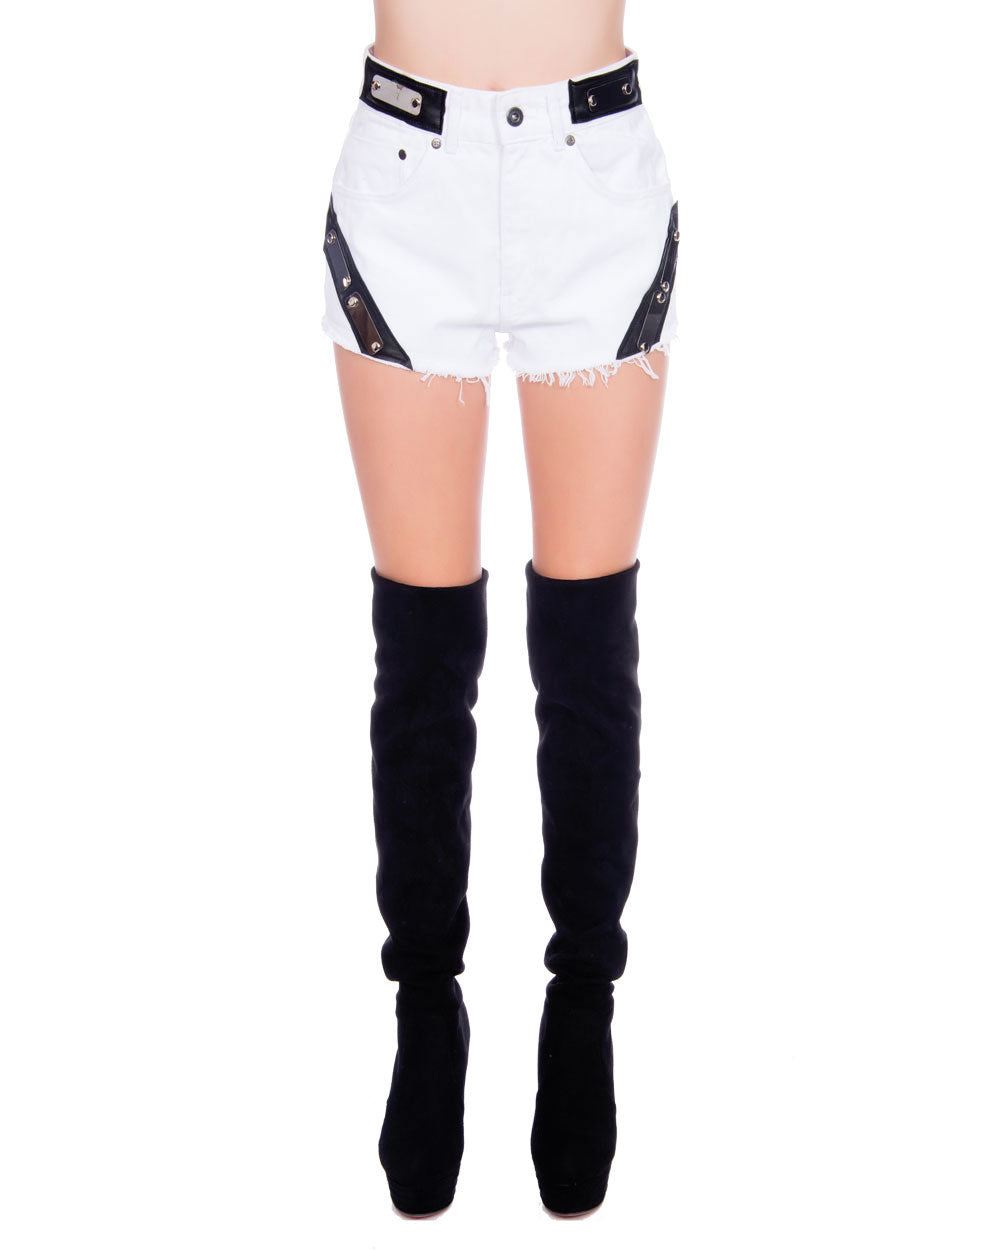 KOJI WHITE DENIM SHORTS - Eros Mortis